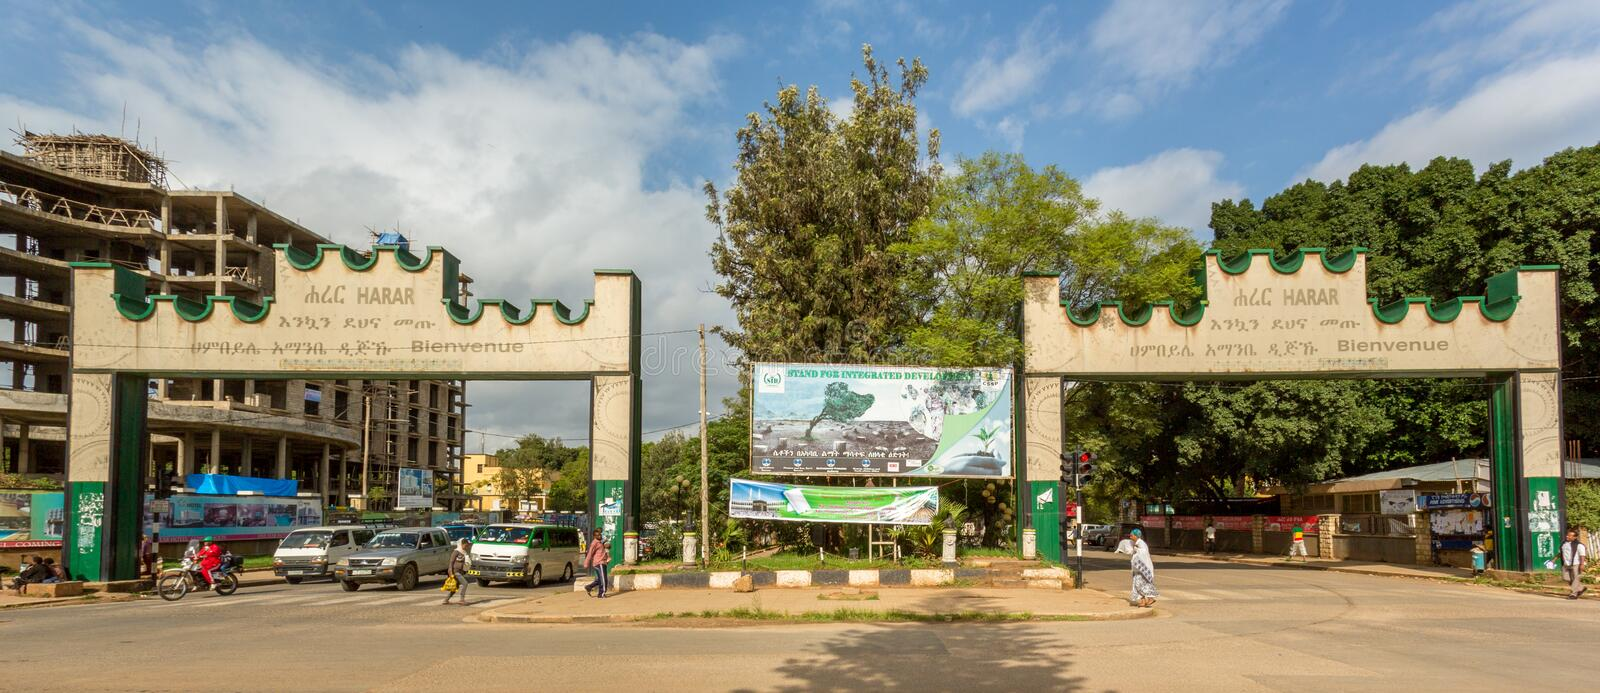 Harar Gate. HARAR, ETHIOPIA - JULY 26,2014 - Two Gates with welcoming messages are placed at the border of the city of Harar royalty free stock photos